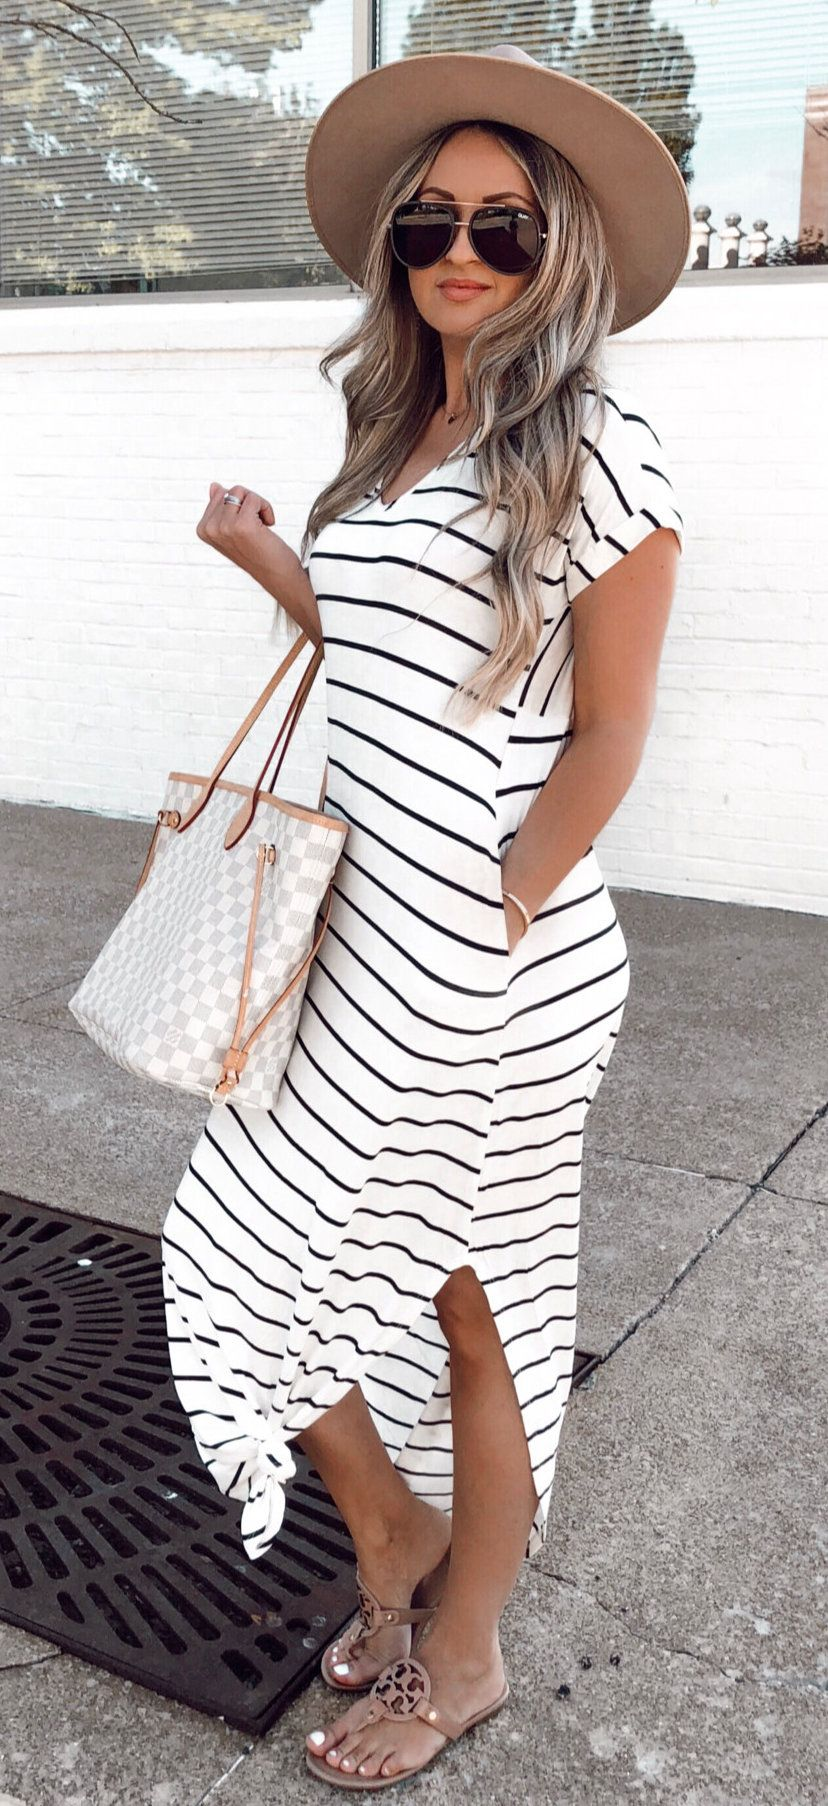 Black And White Striped Short Sleeved Dress Summer Outfits Trendy Summer Outfits Fashion Spring Outfits [ 1806 x 828 Pixel ]